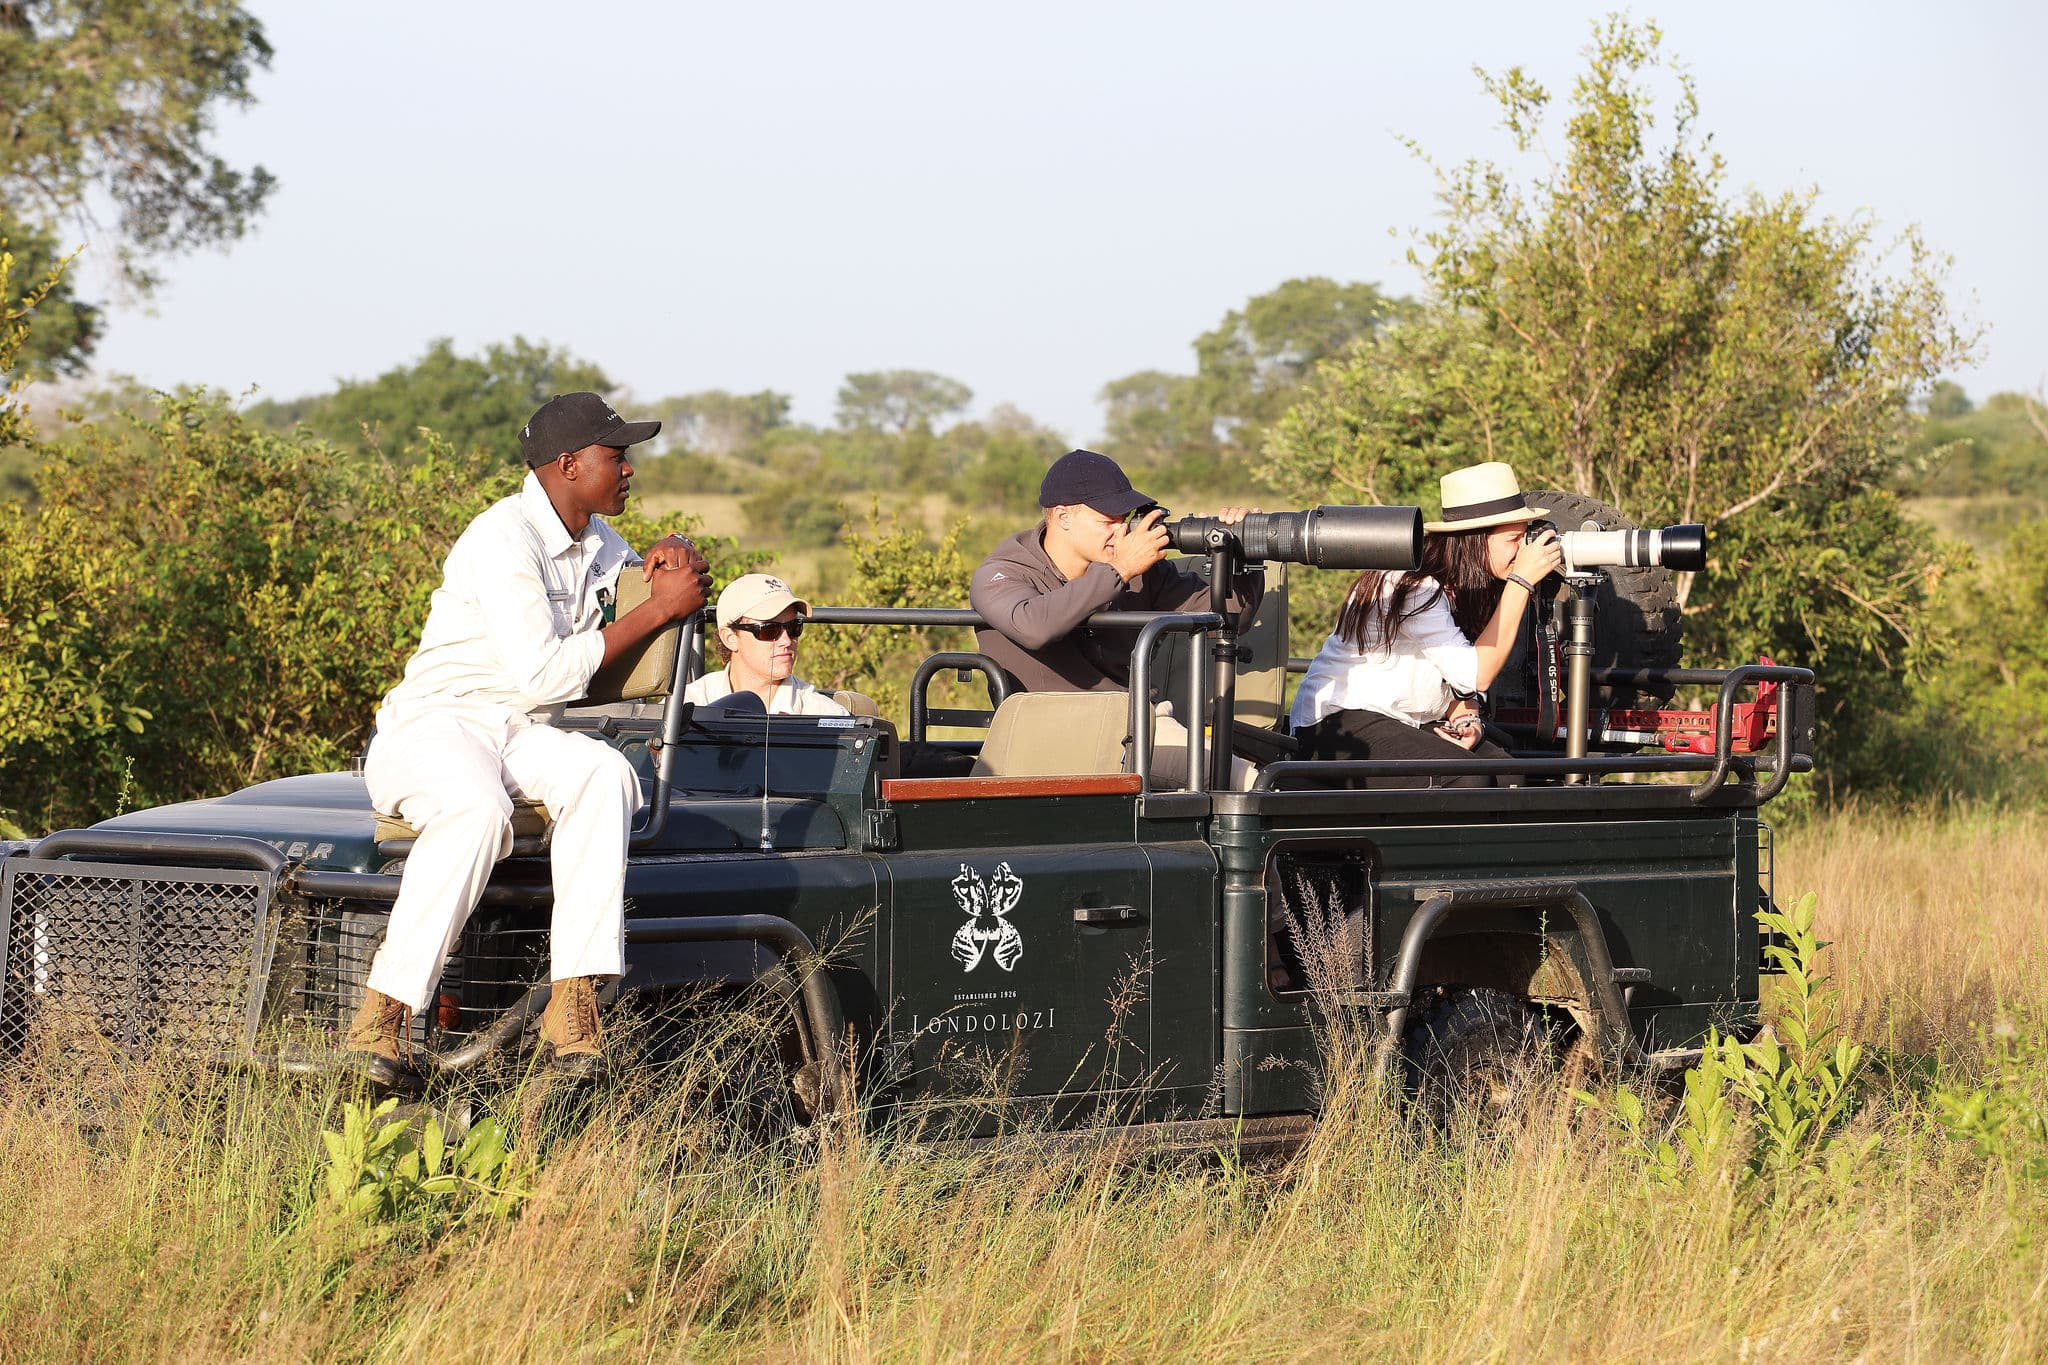 Photographic safaris at Londolozi